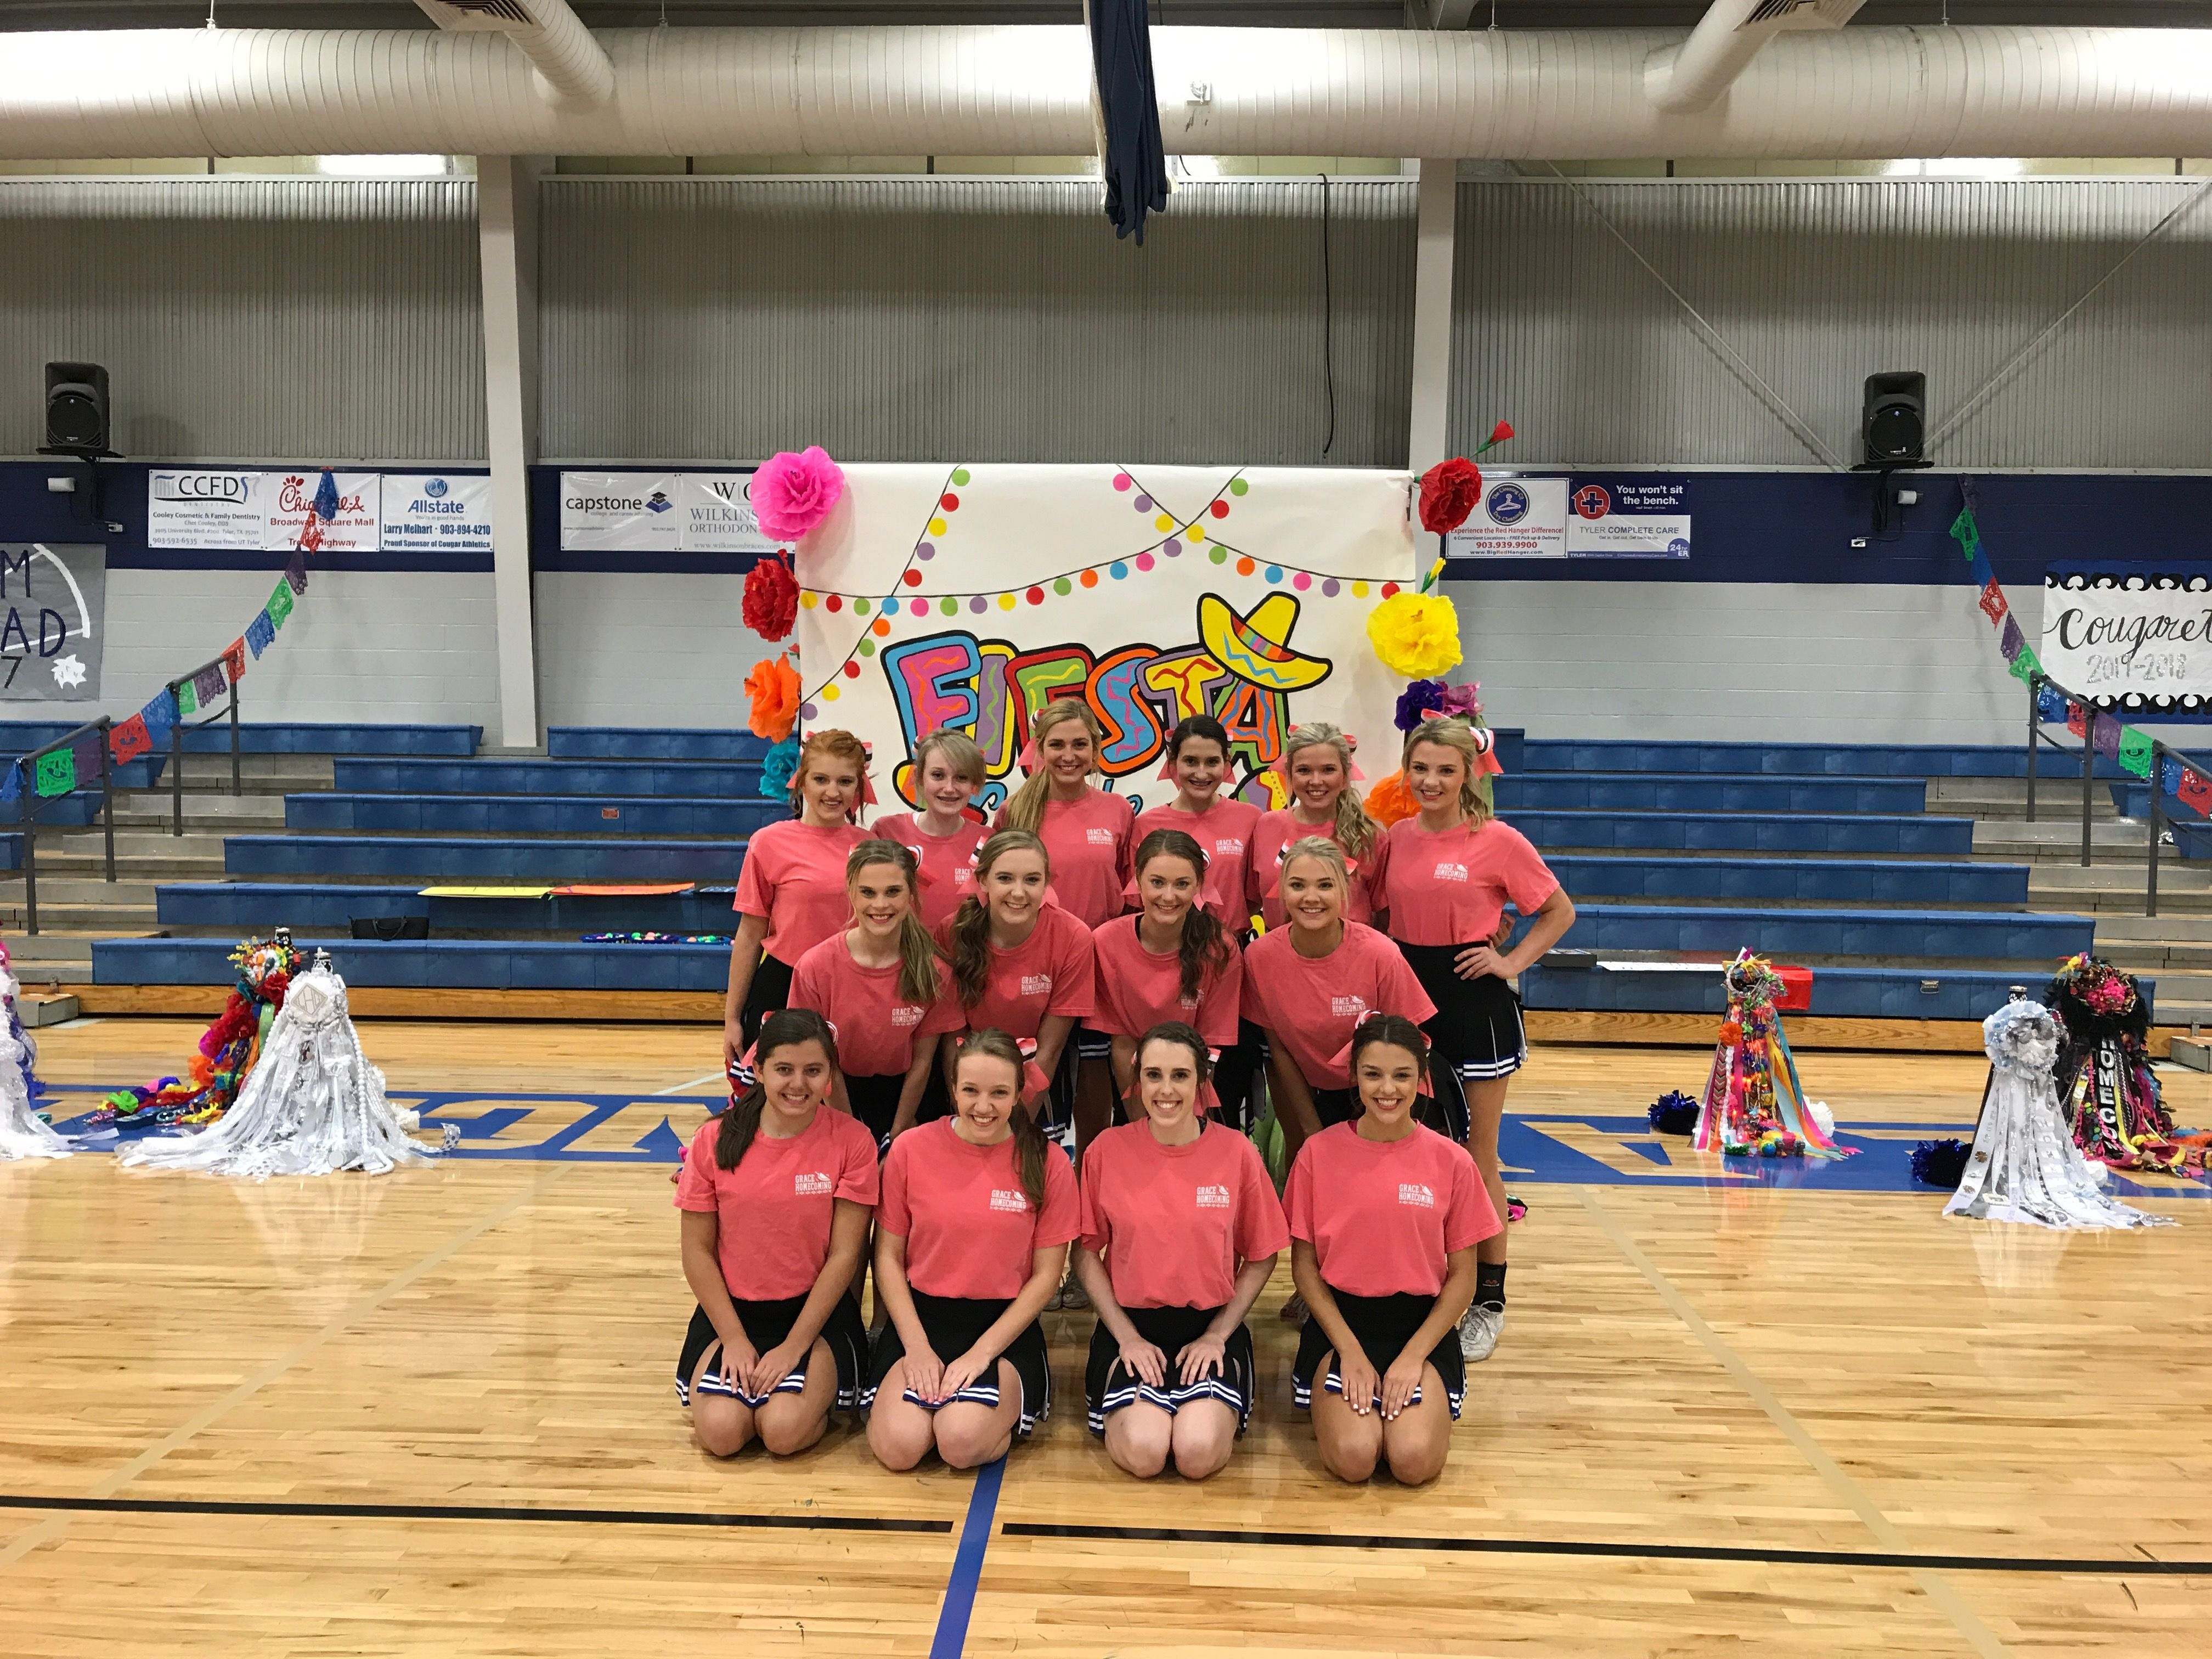 Fiesta Themed Pep Rally 10 6 17 Cheer Team Picture Cheer Team Pictures Team Pictures Cheer Team